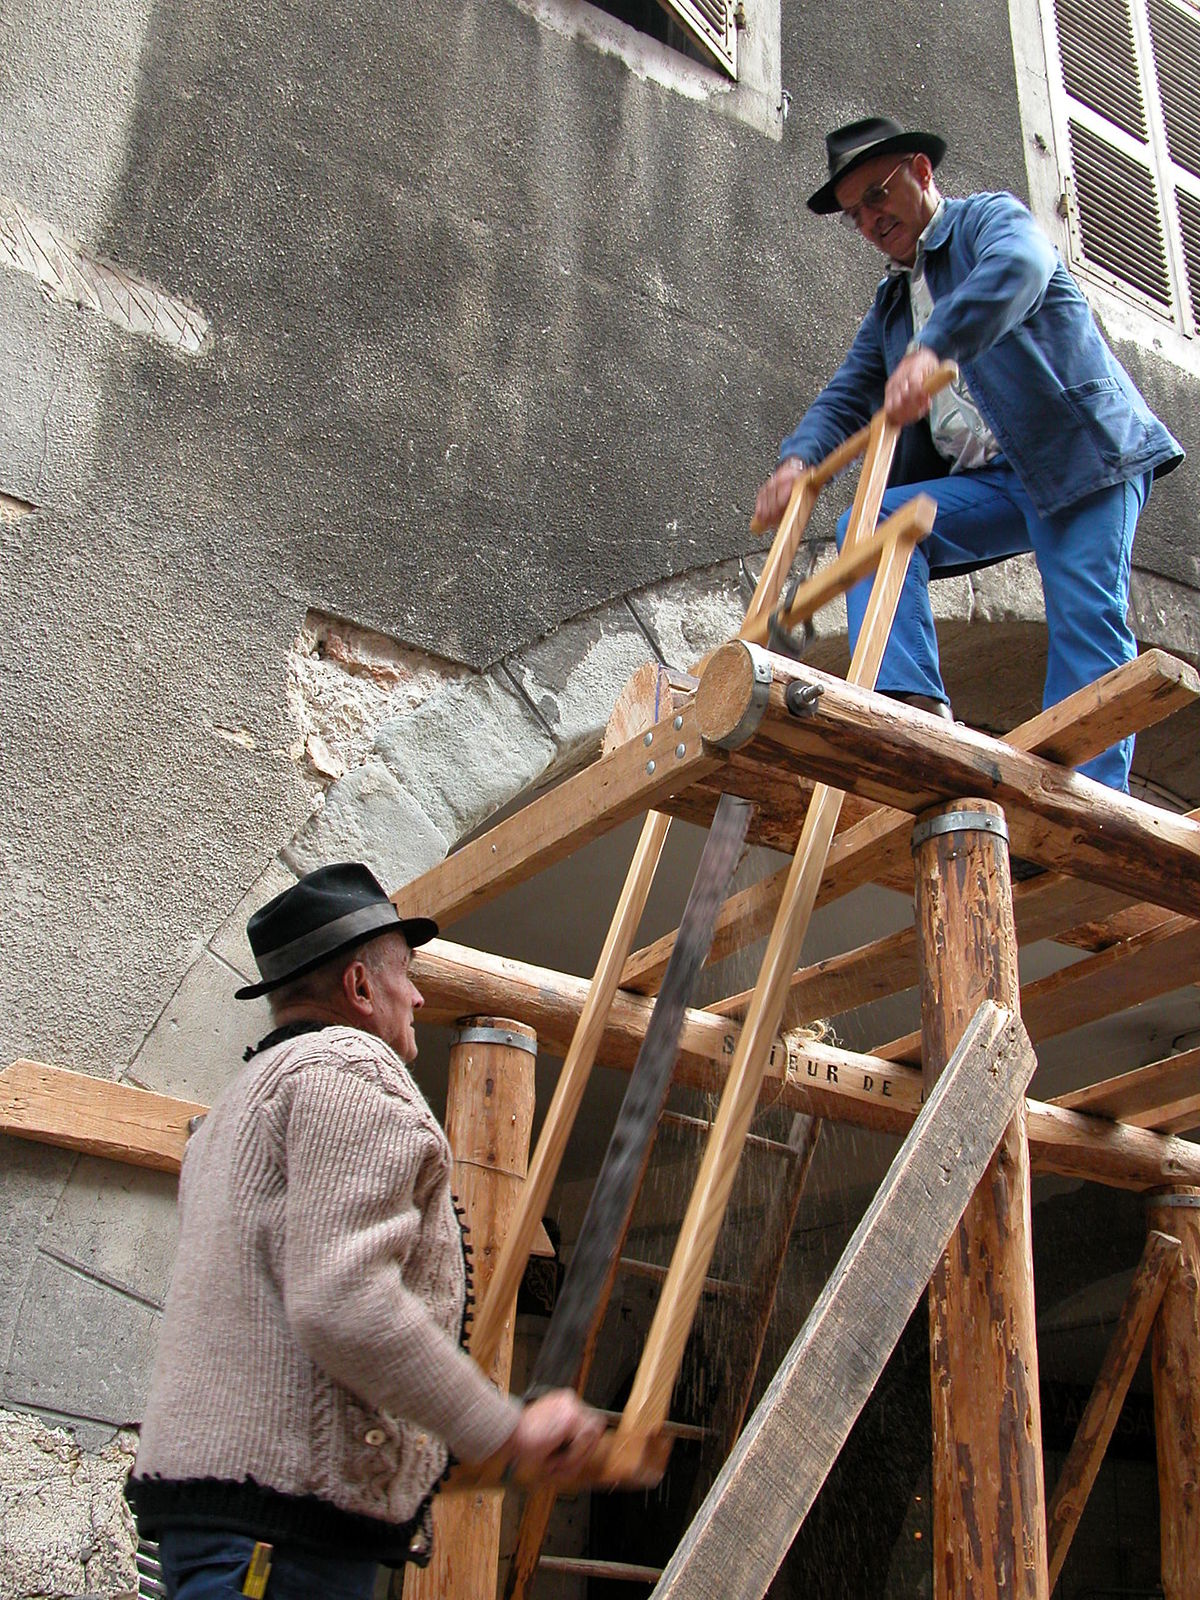 Two men ripping a log using an Andre Roubo style frame saw. (www.wikipedia.org)